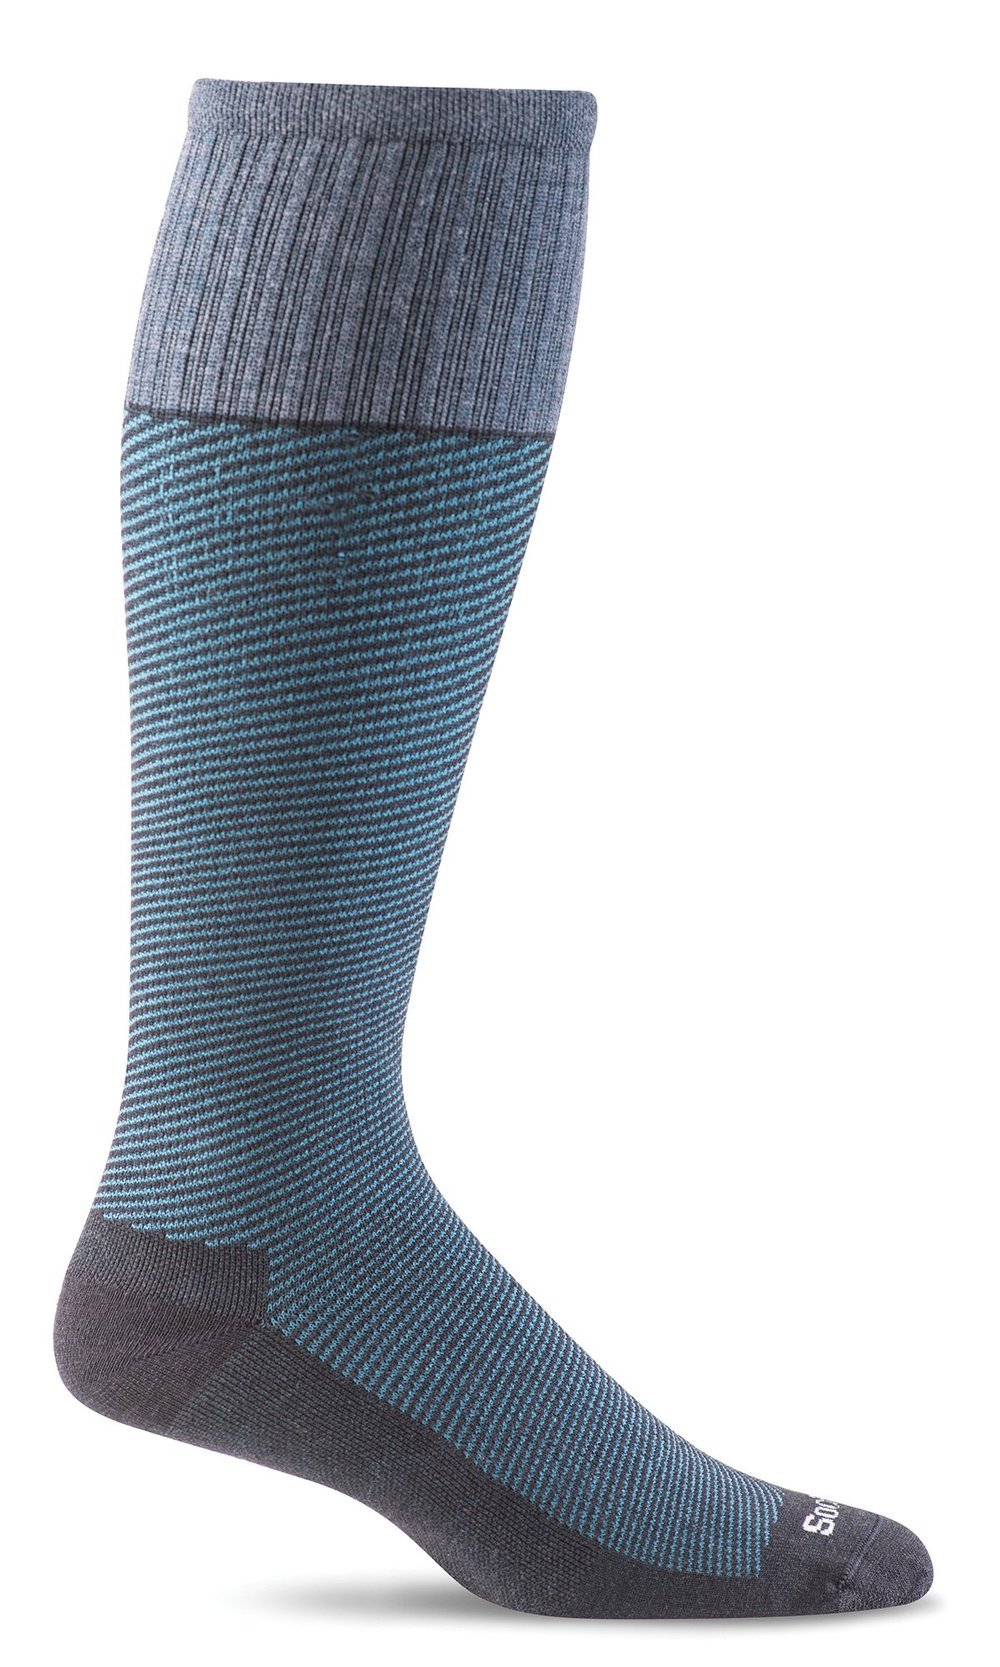 Sockwell Men's Bart Graduated Compression Socks